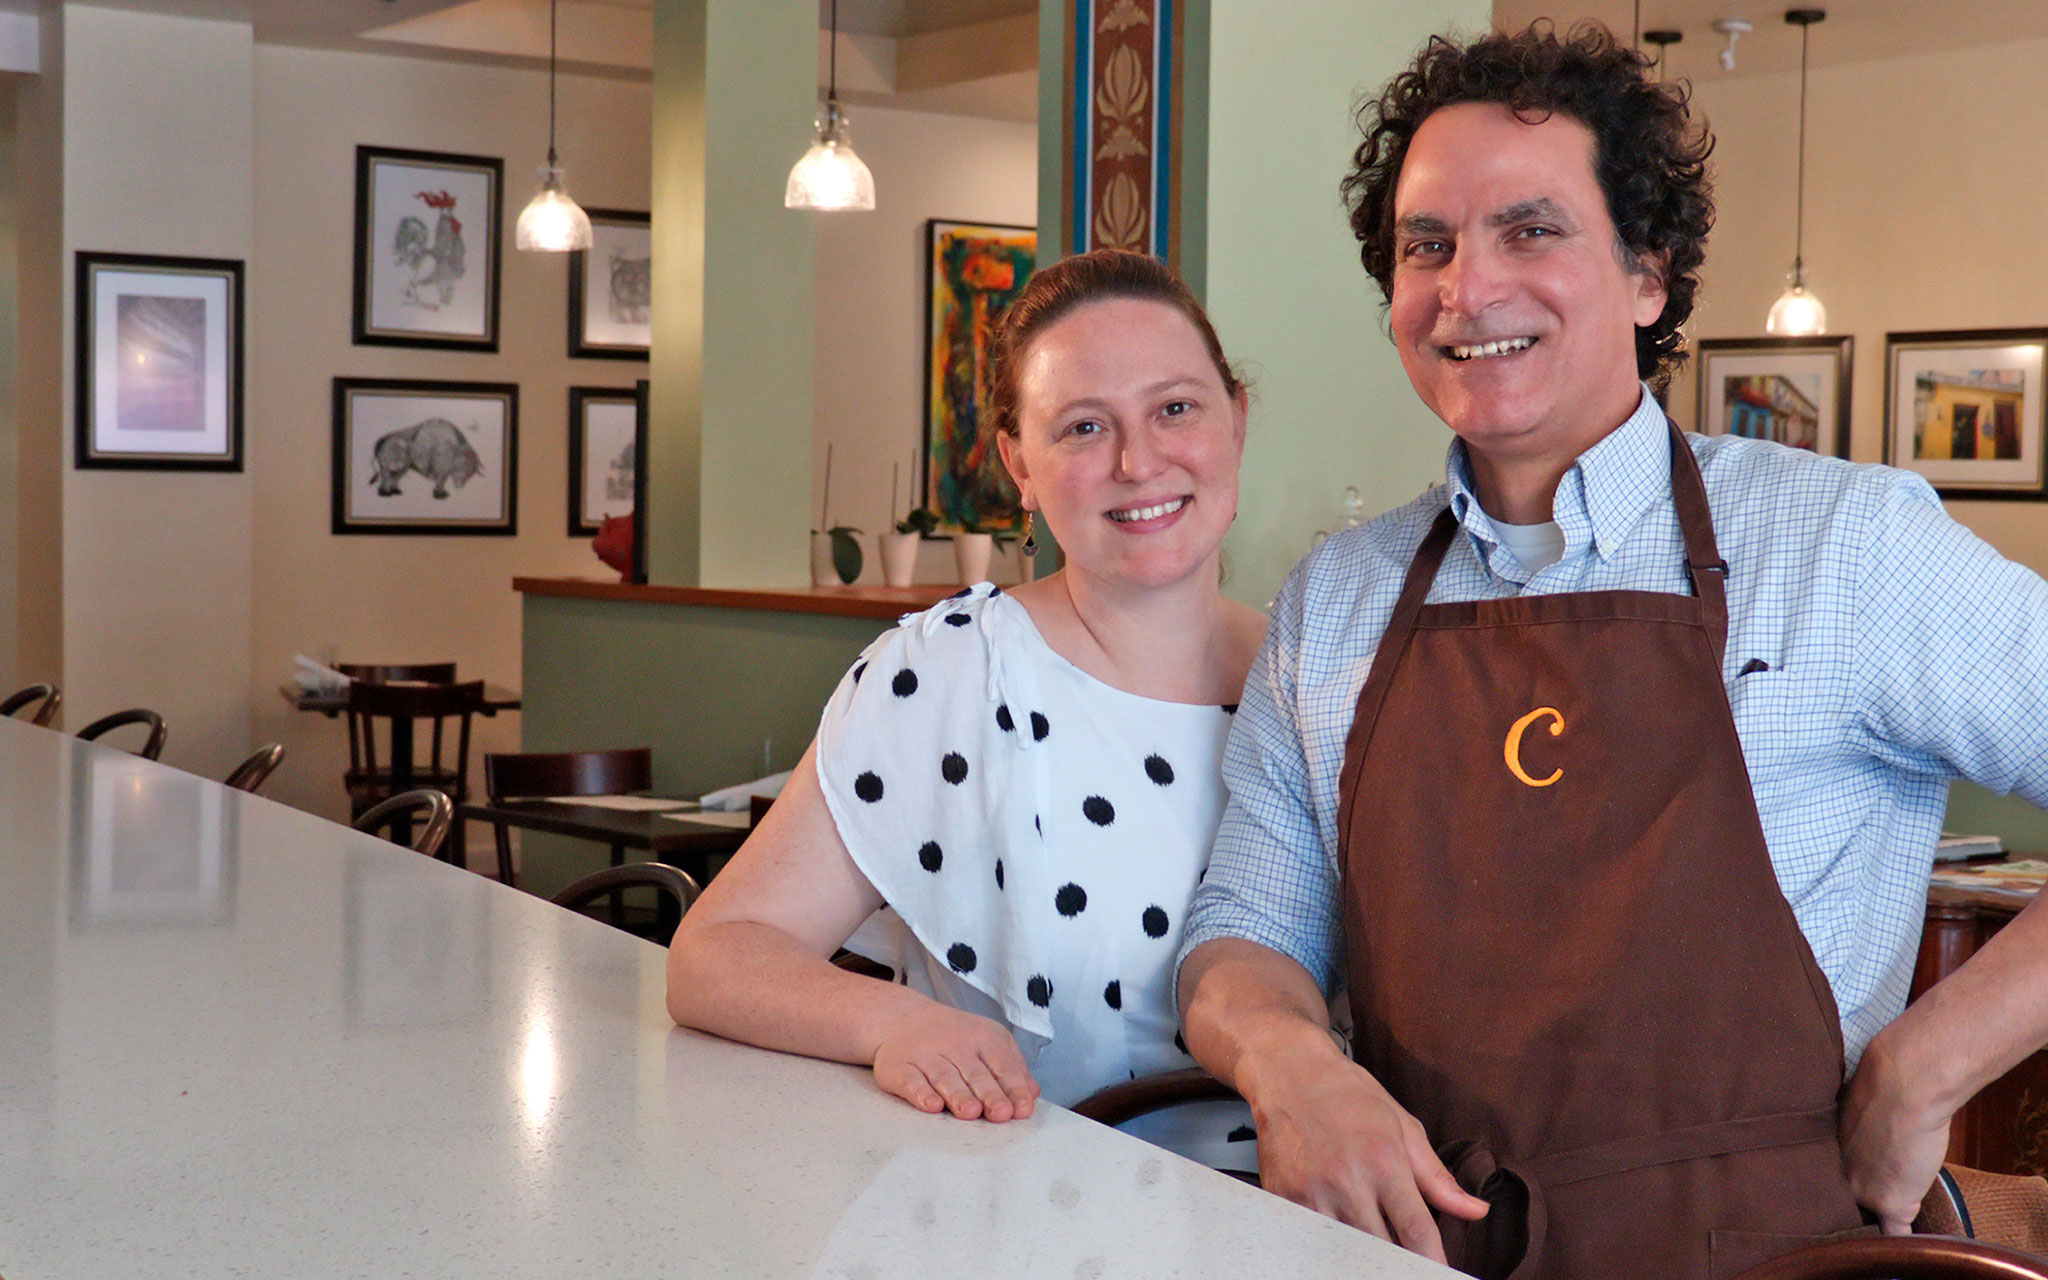 Elizabeth Matos and Roberto Capo Matos, co-owners of COPA